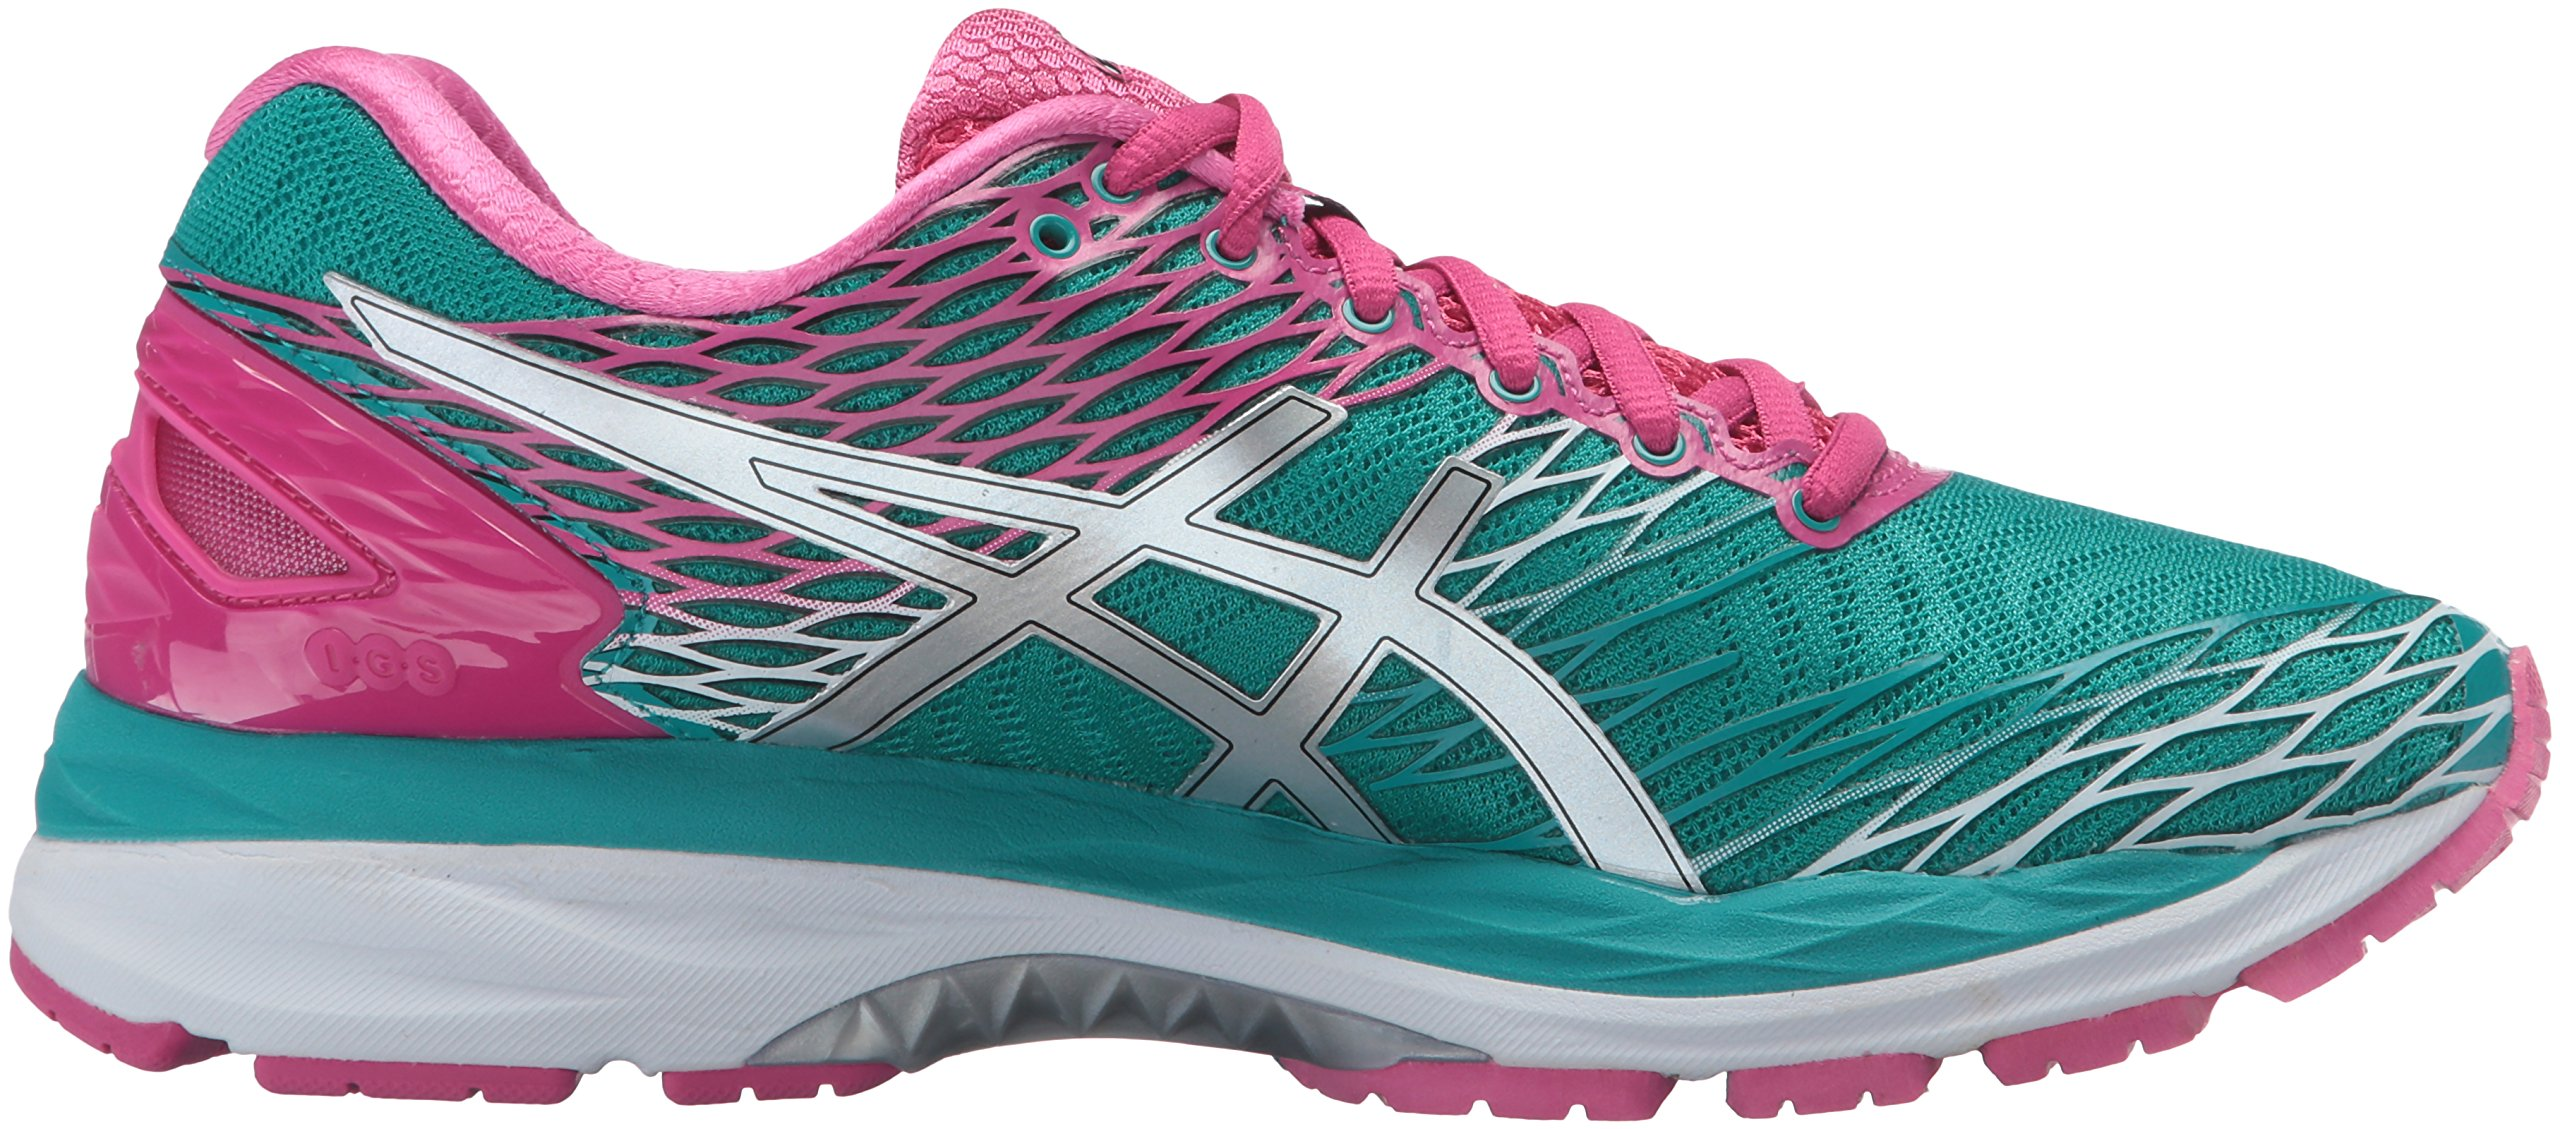 81taSuSljzL - ASICS Unisex Adults' Mens Fitness/Cross-Training Trail Running Shoe